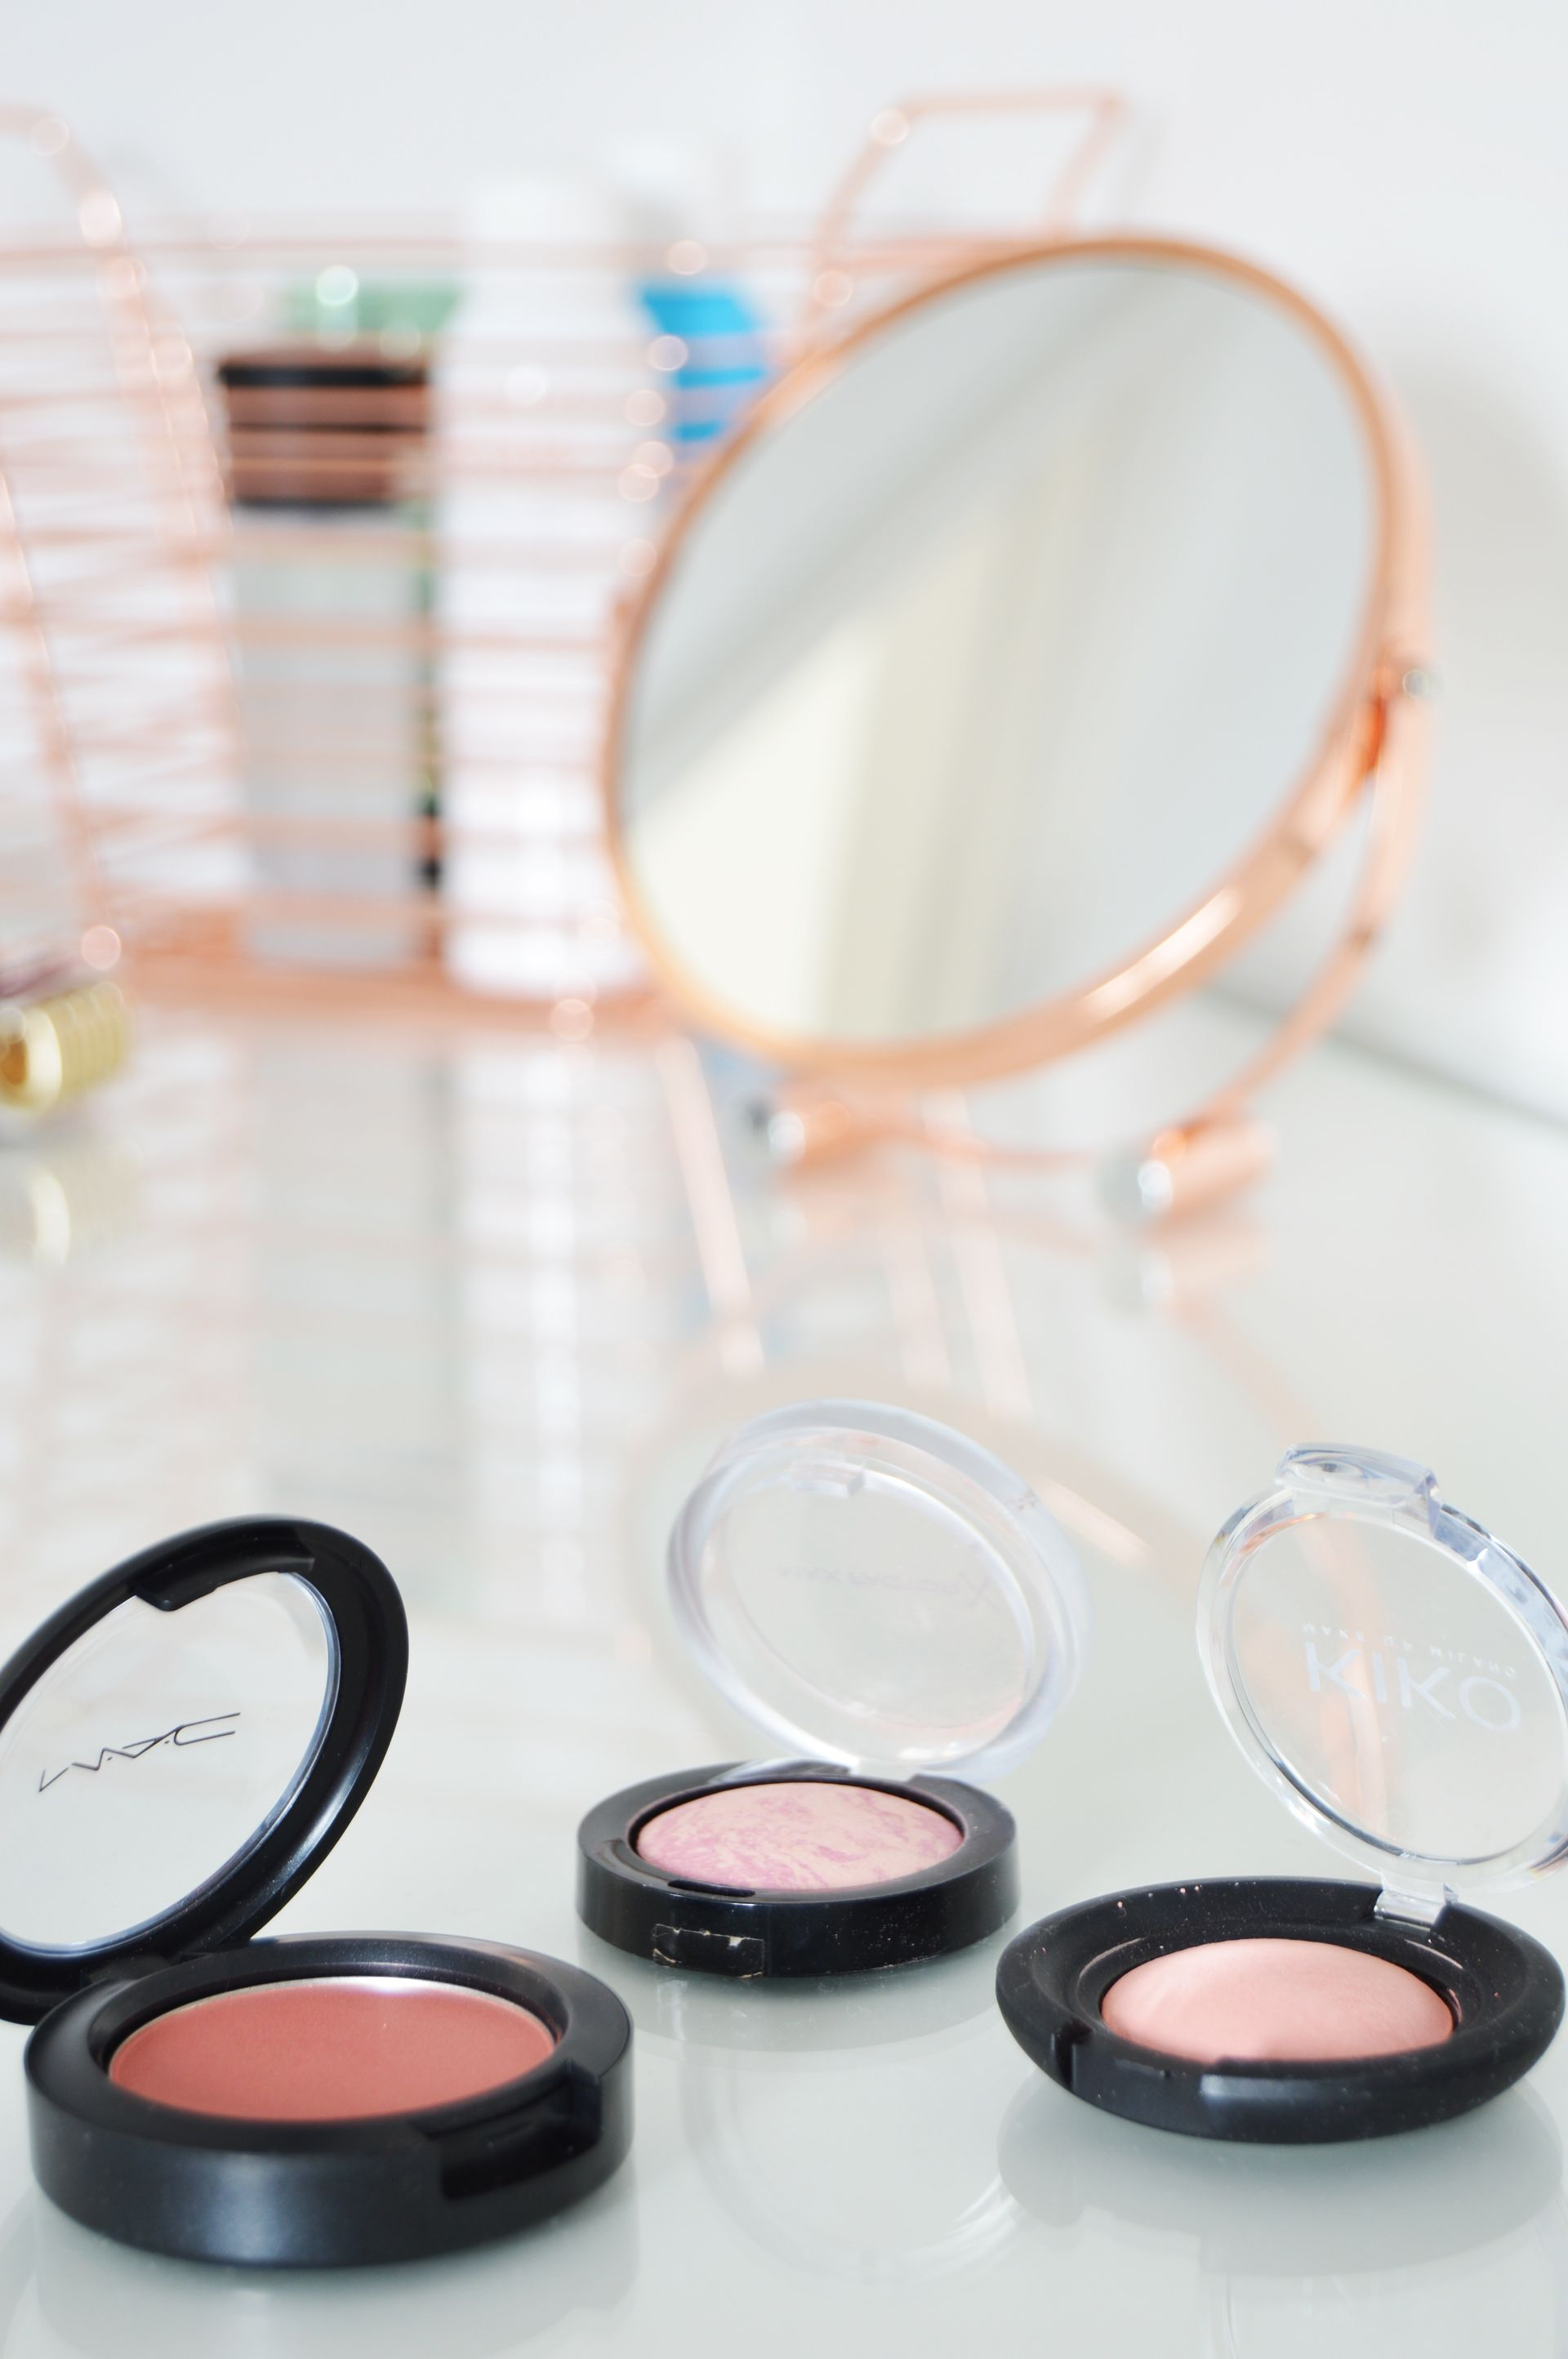 Pink blushes for every budget. There are so many brands out in the market and some of them offer so many affordable products. Top 3 pink blushes for every budget.